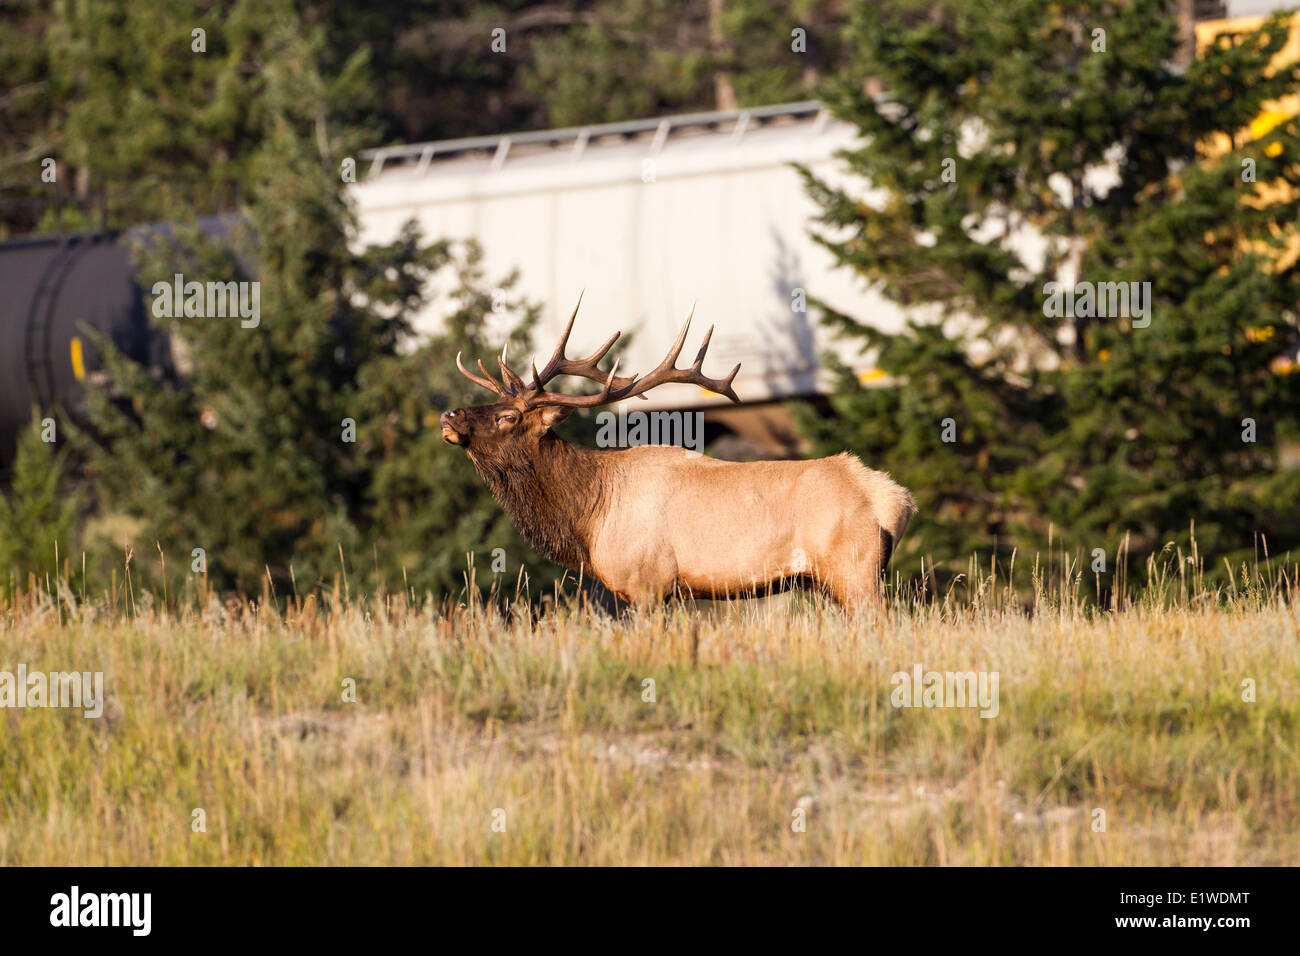 Bull Elk or wapiti (Cervus canadensis formerly classed with Cervus elaphus) beside a passing train in Jasper National - Stock Image